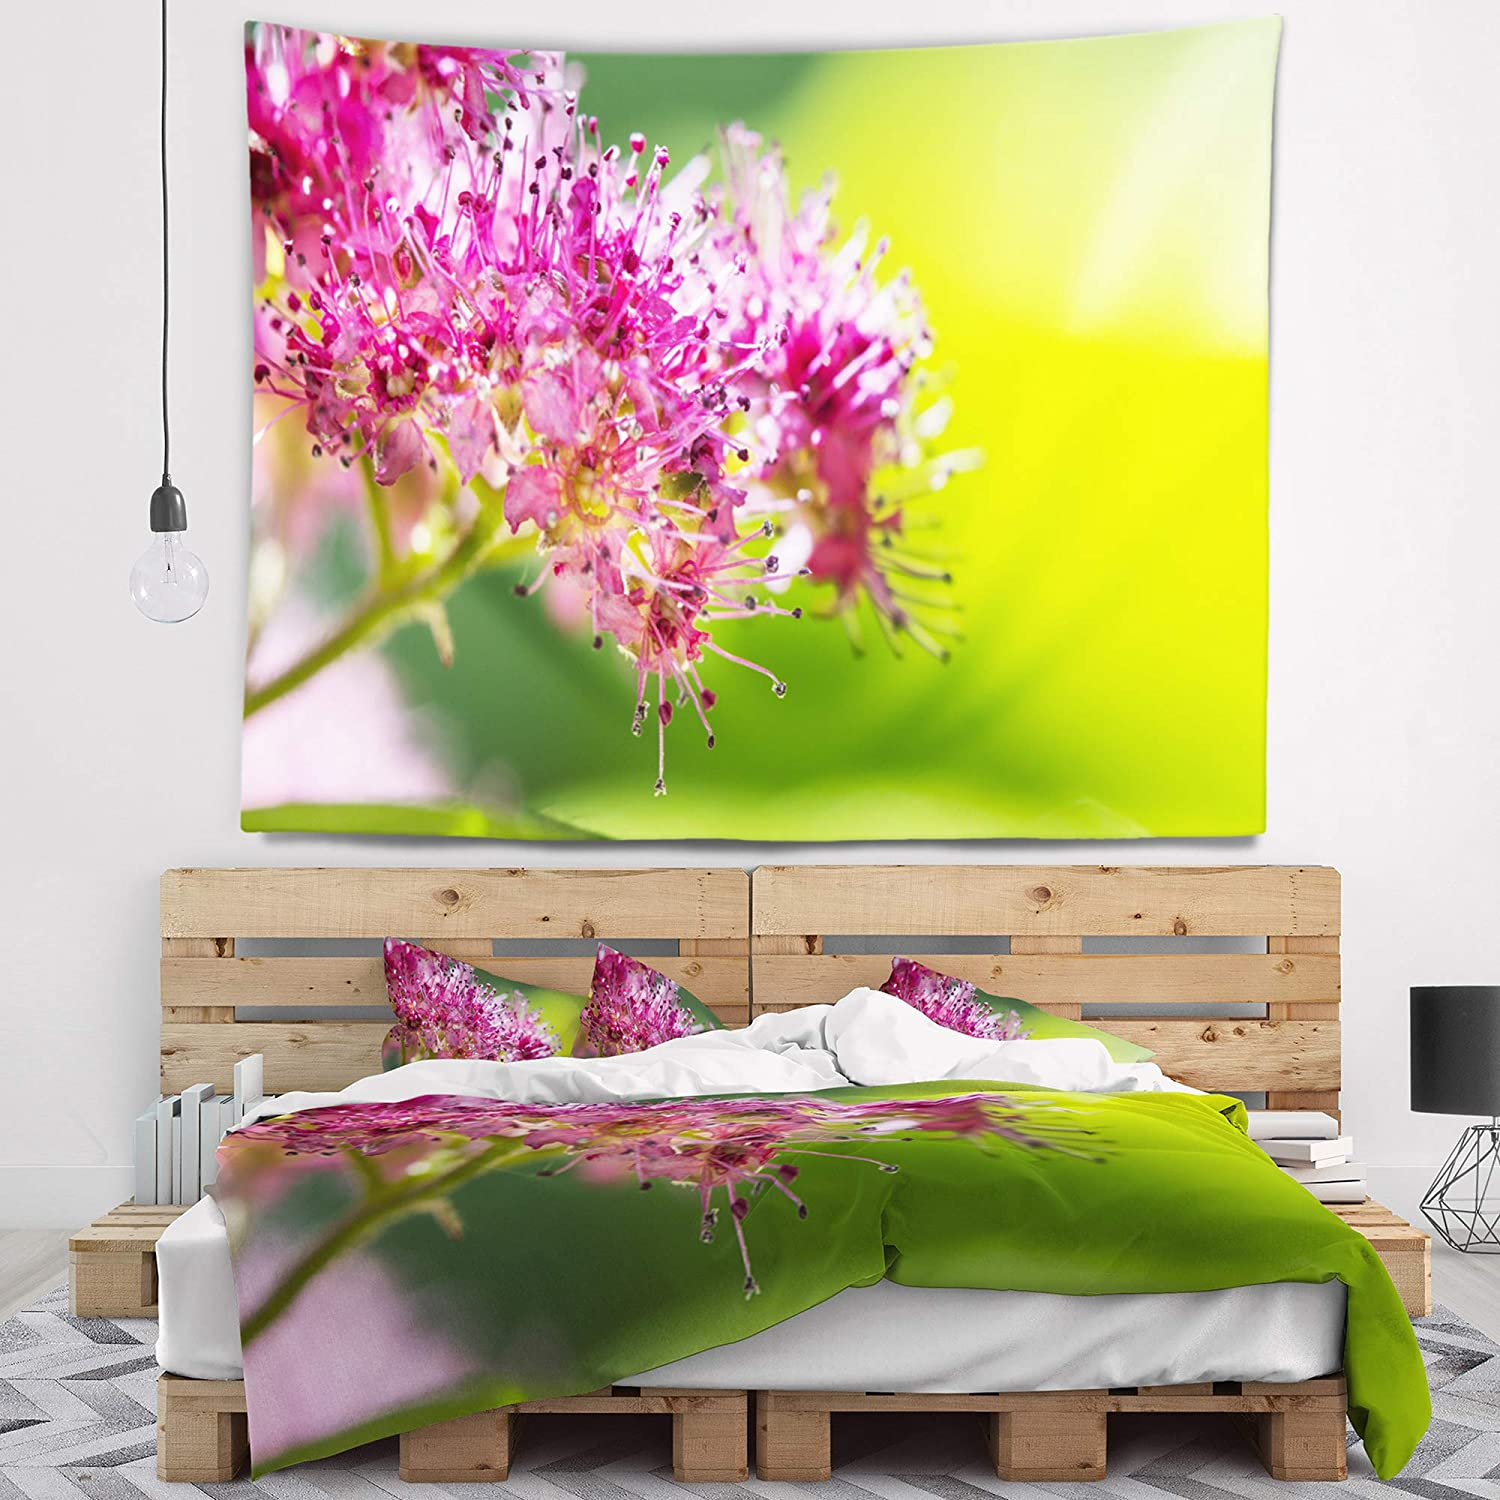 x 68 in 80 in Designart TAP10006-80-68  Pink Little Flowers in Green Floral Blanket D/écor Art for Home and Office Wall Tapestry x Large Created On Lightweight Polyester Fabric